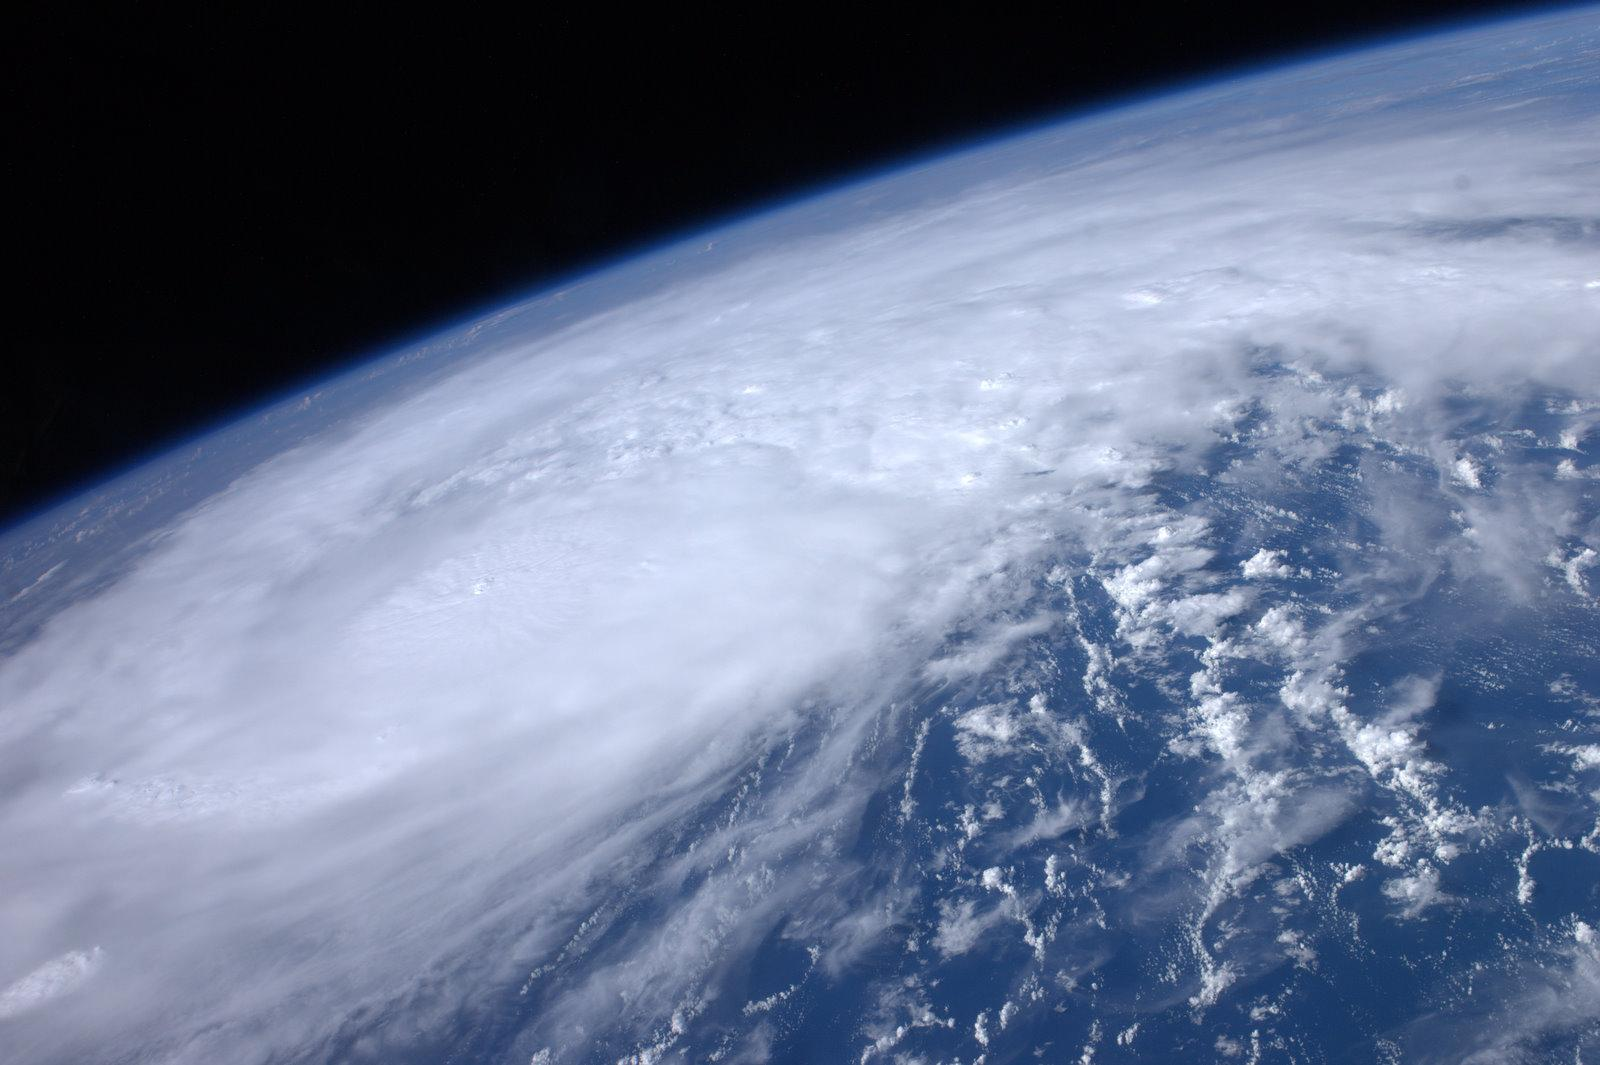 A NASA photo of a hurricane from space.